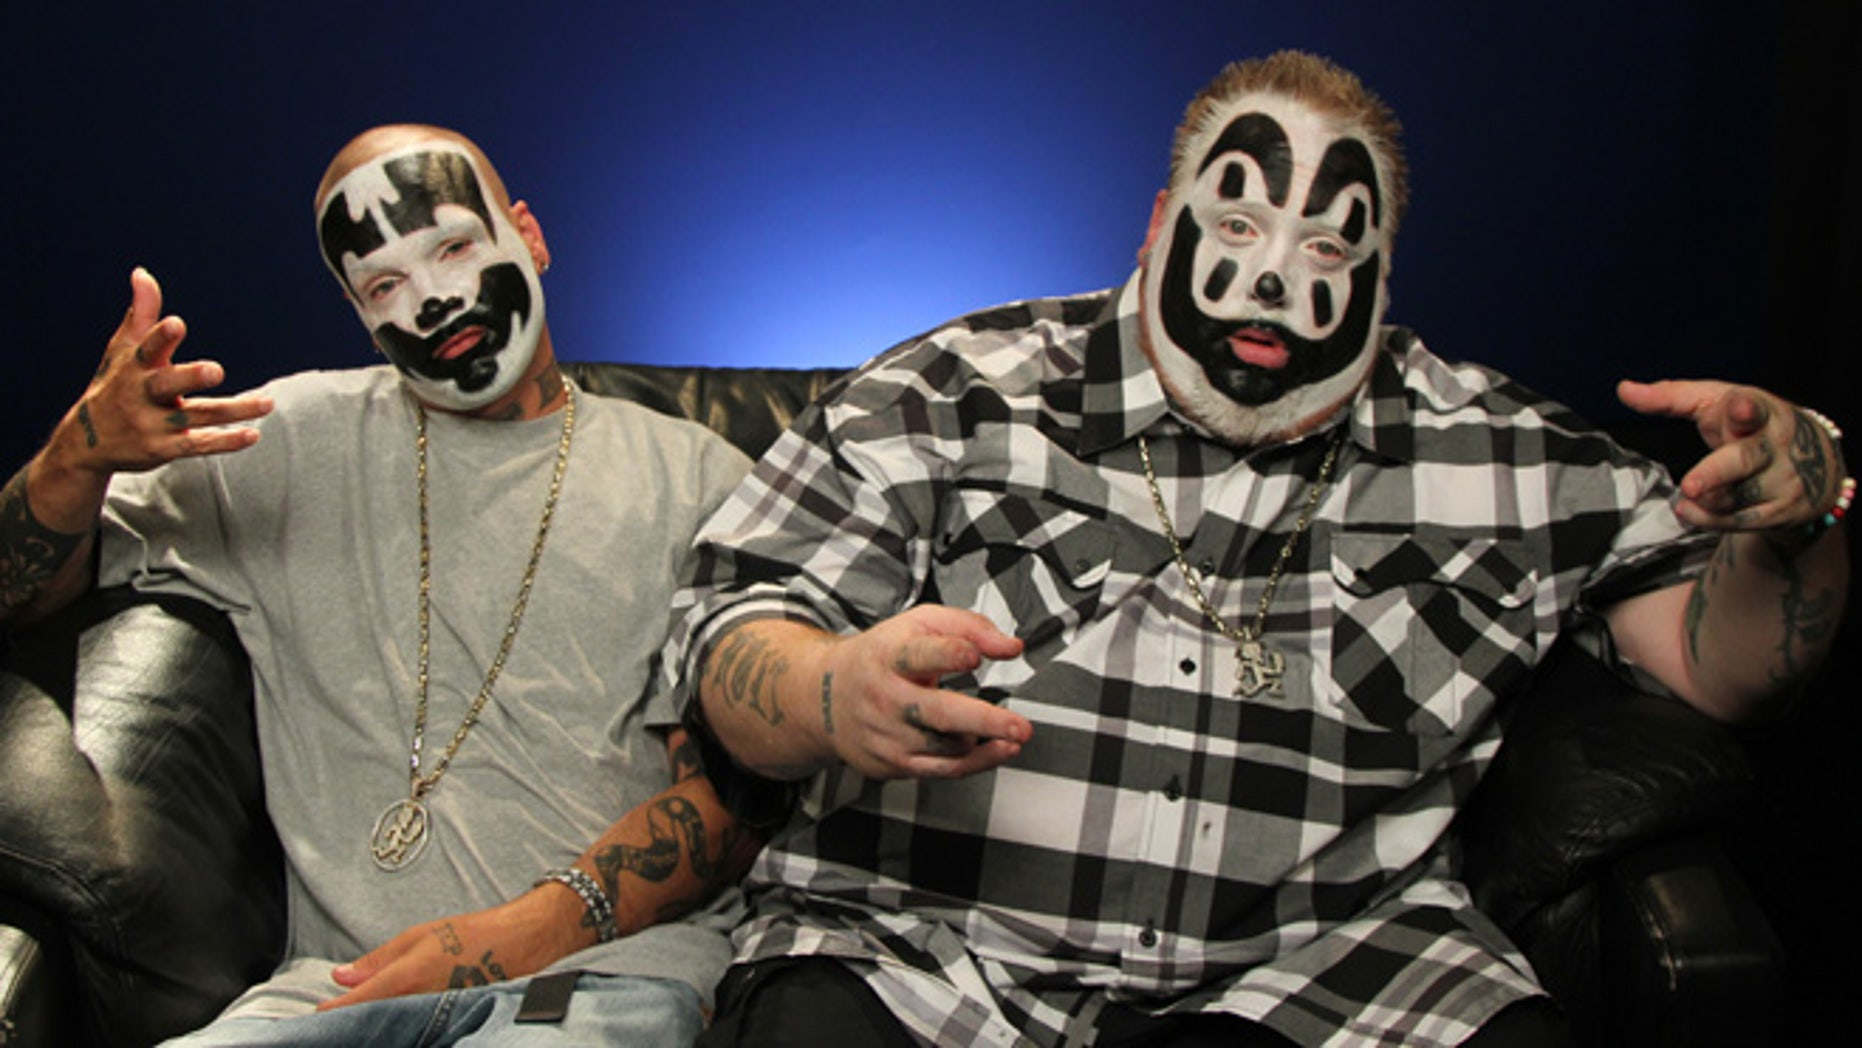 July 29, 2013: This photo shows Joseph Utsler, also known as Shaggy 2 Dope, left, and  Joseph Bruce, also known as Violent J, from Insane Clown Posse, in New York.